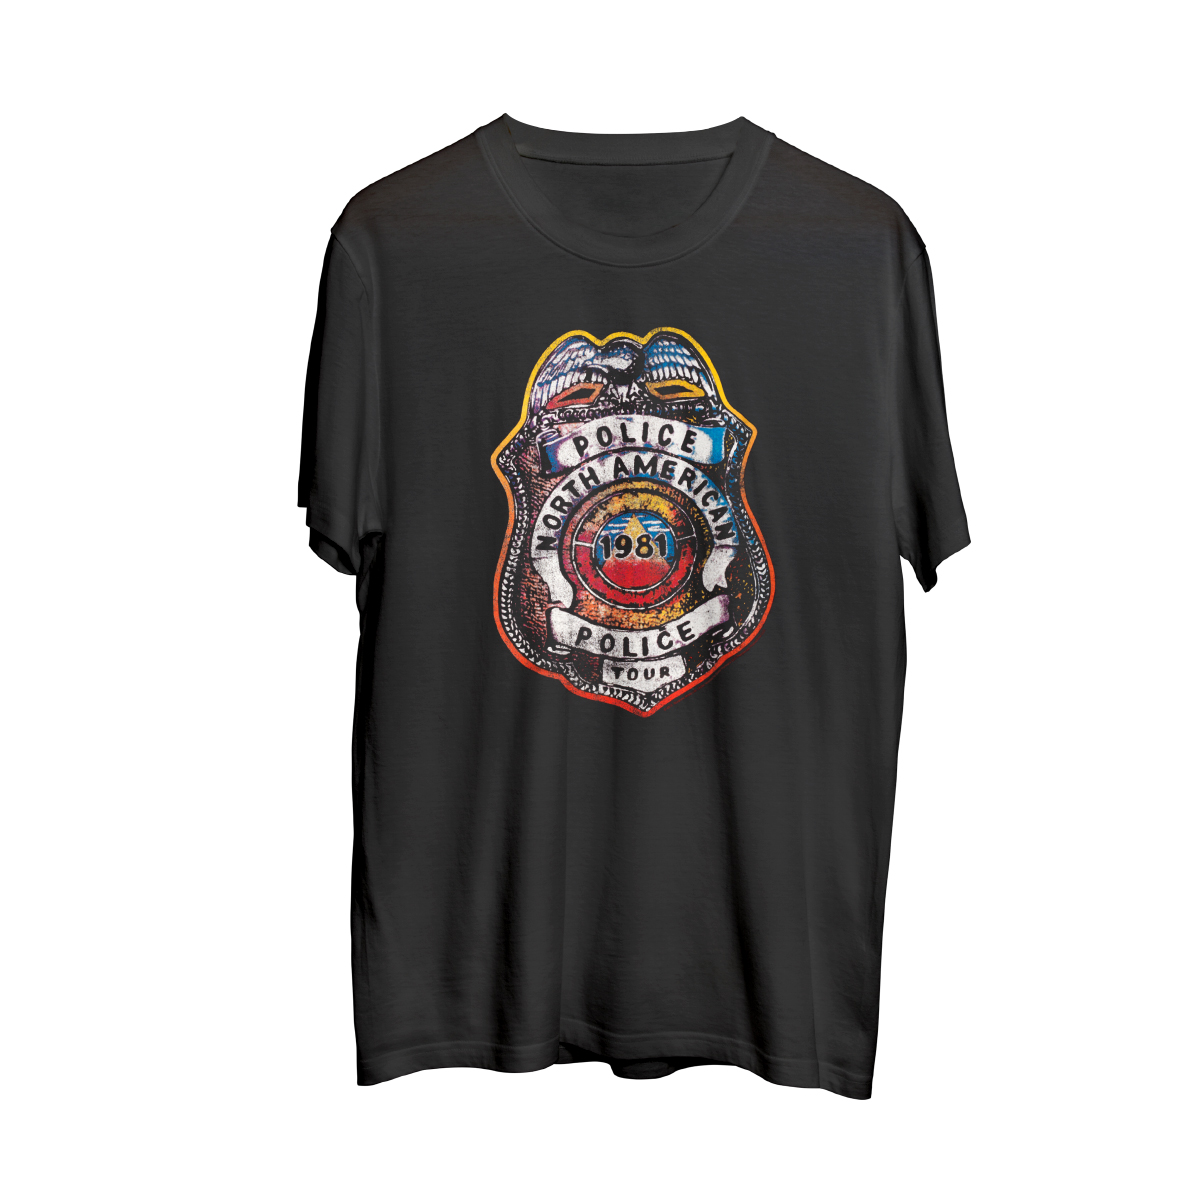 The Police Shield T-Shirt